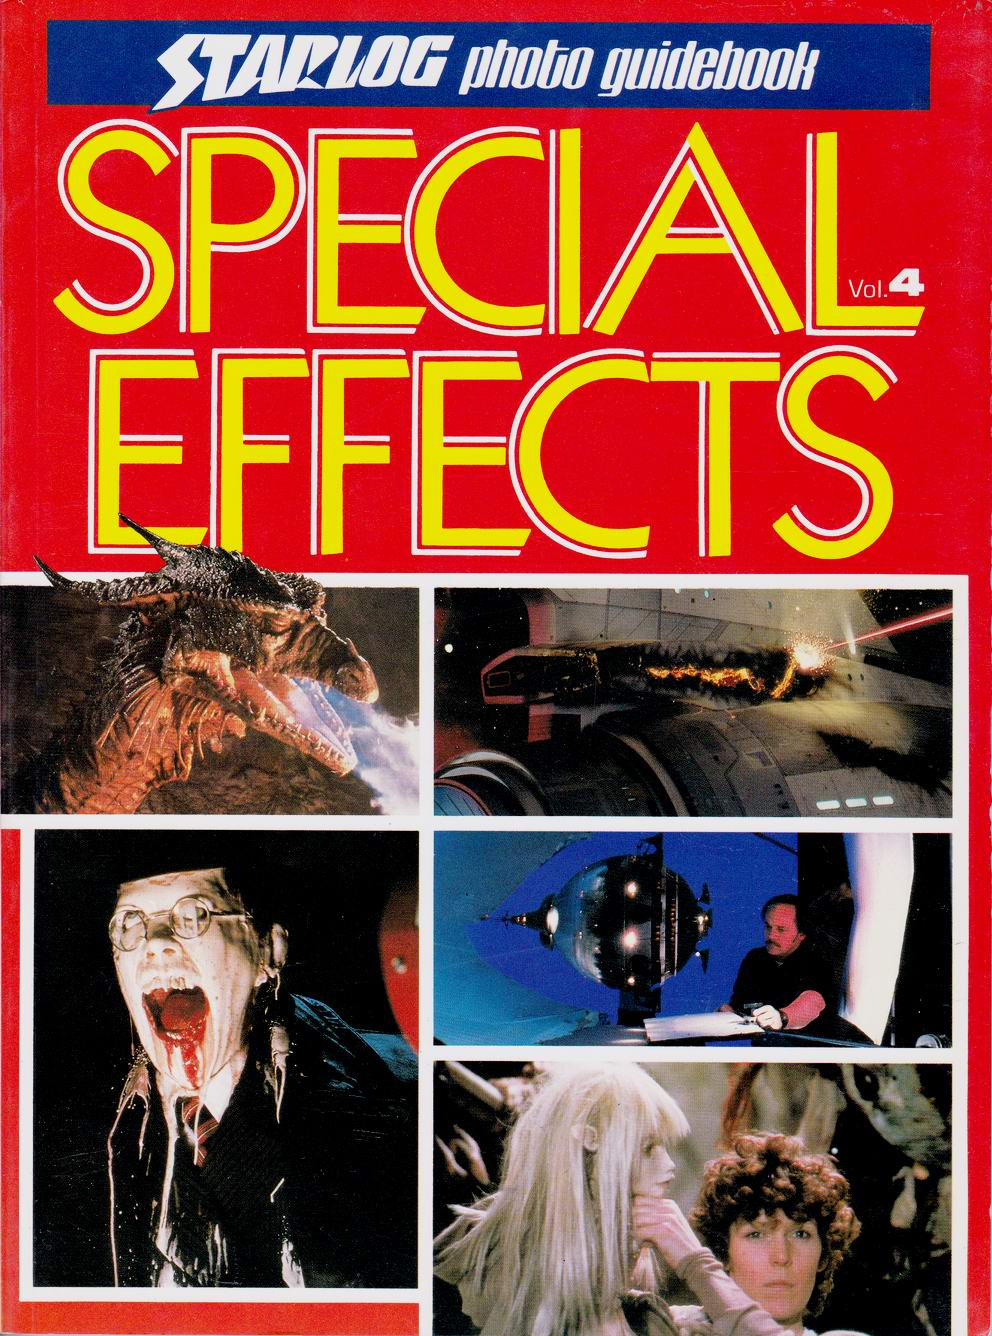 Special Effects Makeup: Starlog Photo Guidebook Special Effects